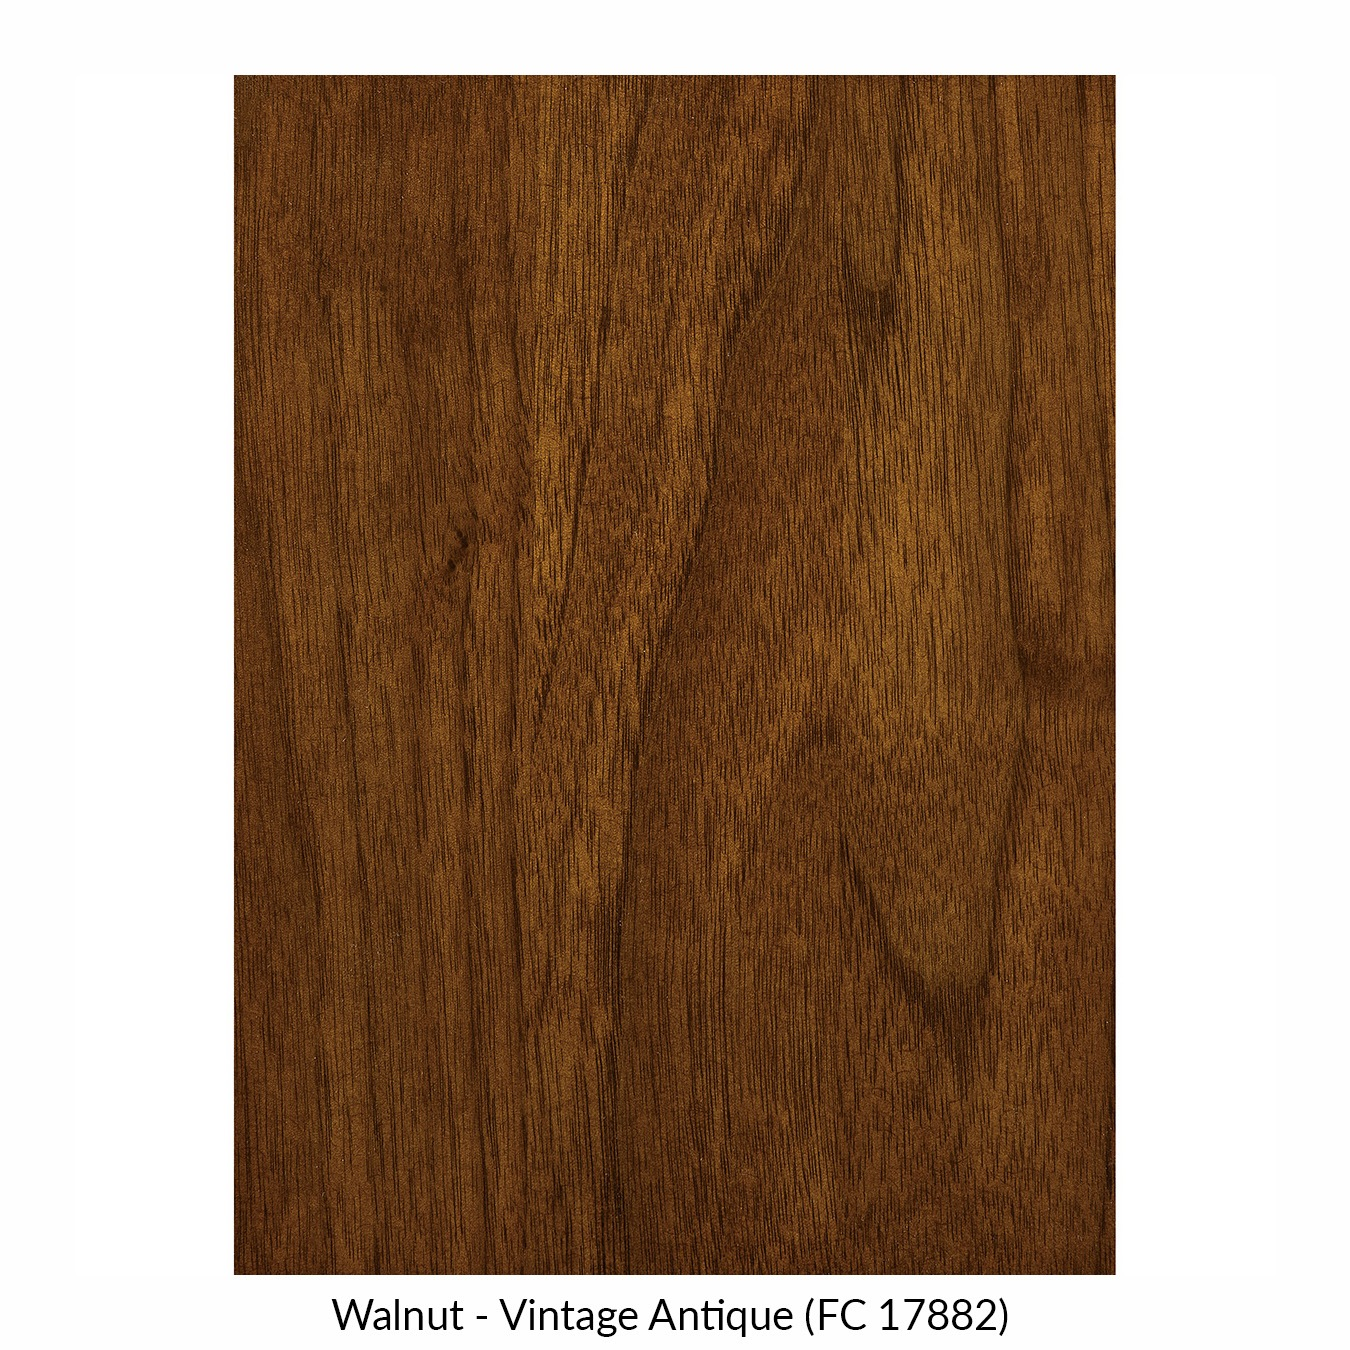 spectrum-walnut-vintage-antique-fc-17882.jpg